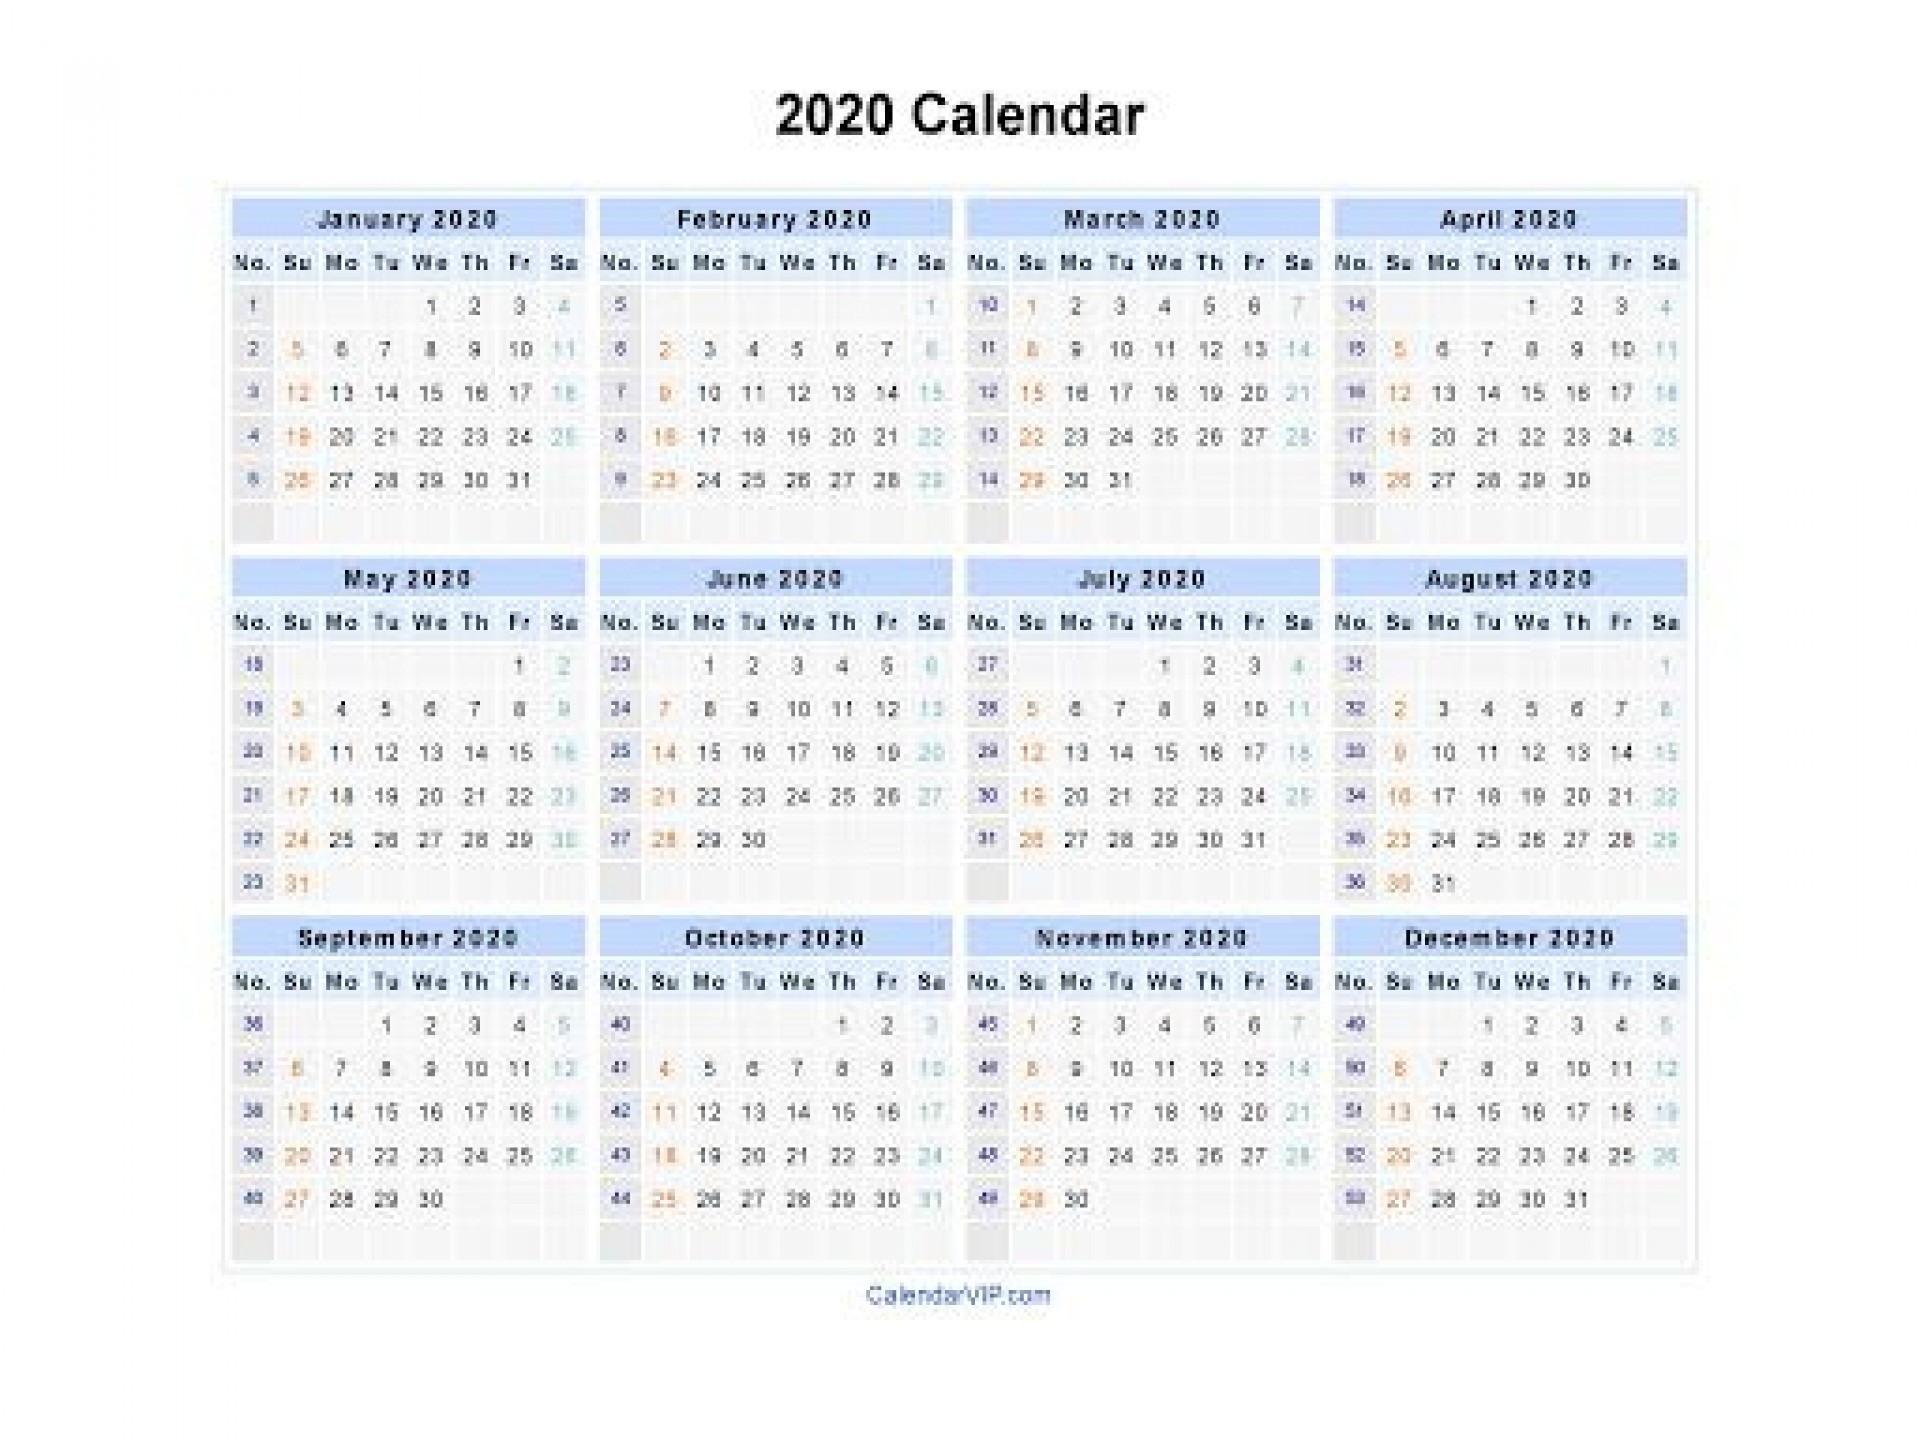 008 Fascinating Microsoft Calendar Template 2020 Highest Quality  Publisher Office Free1920